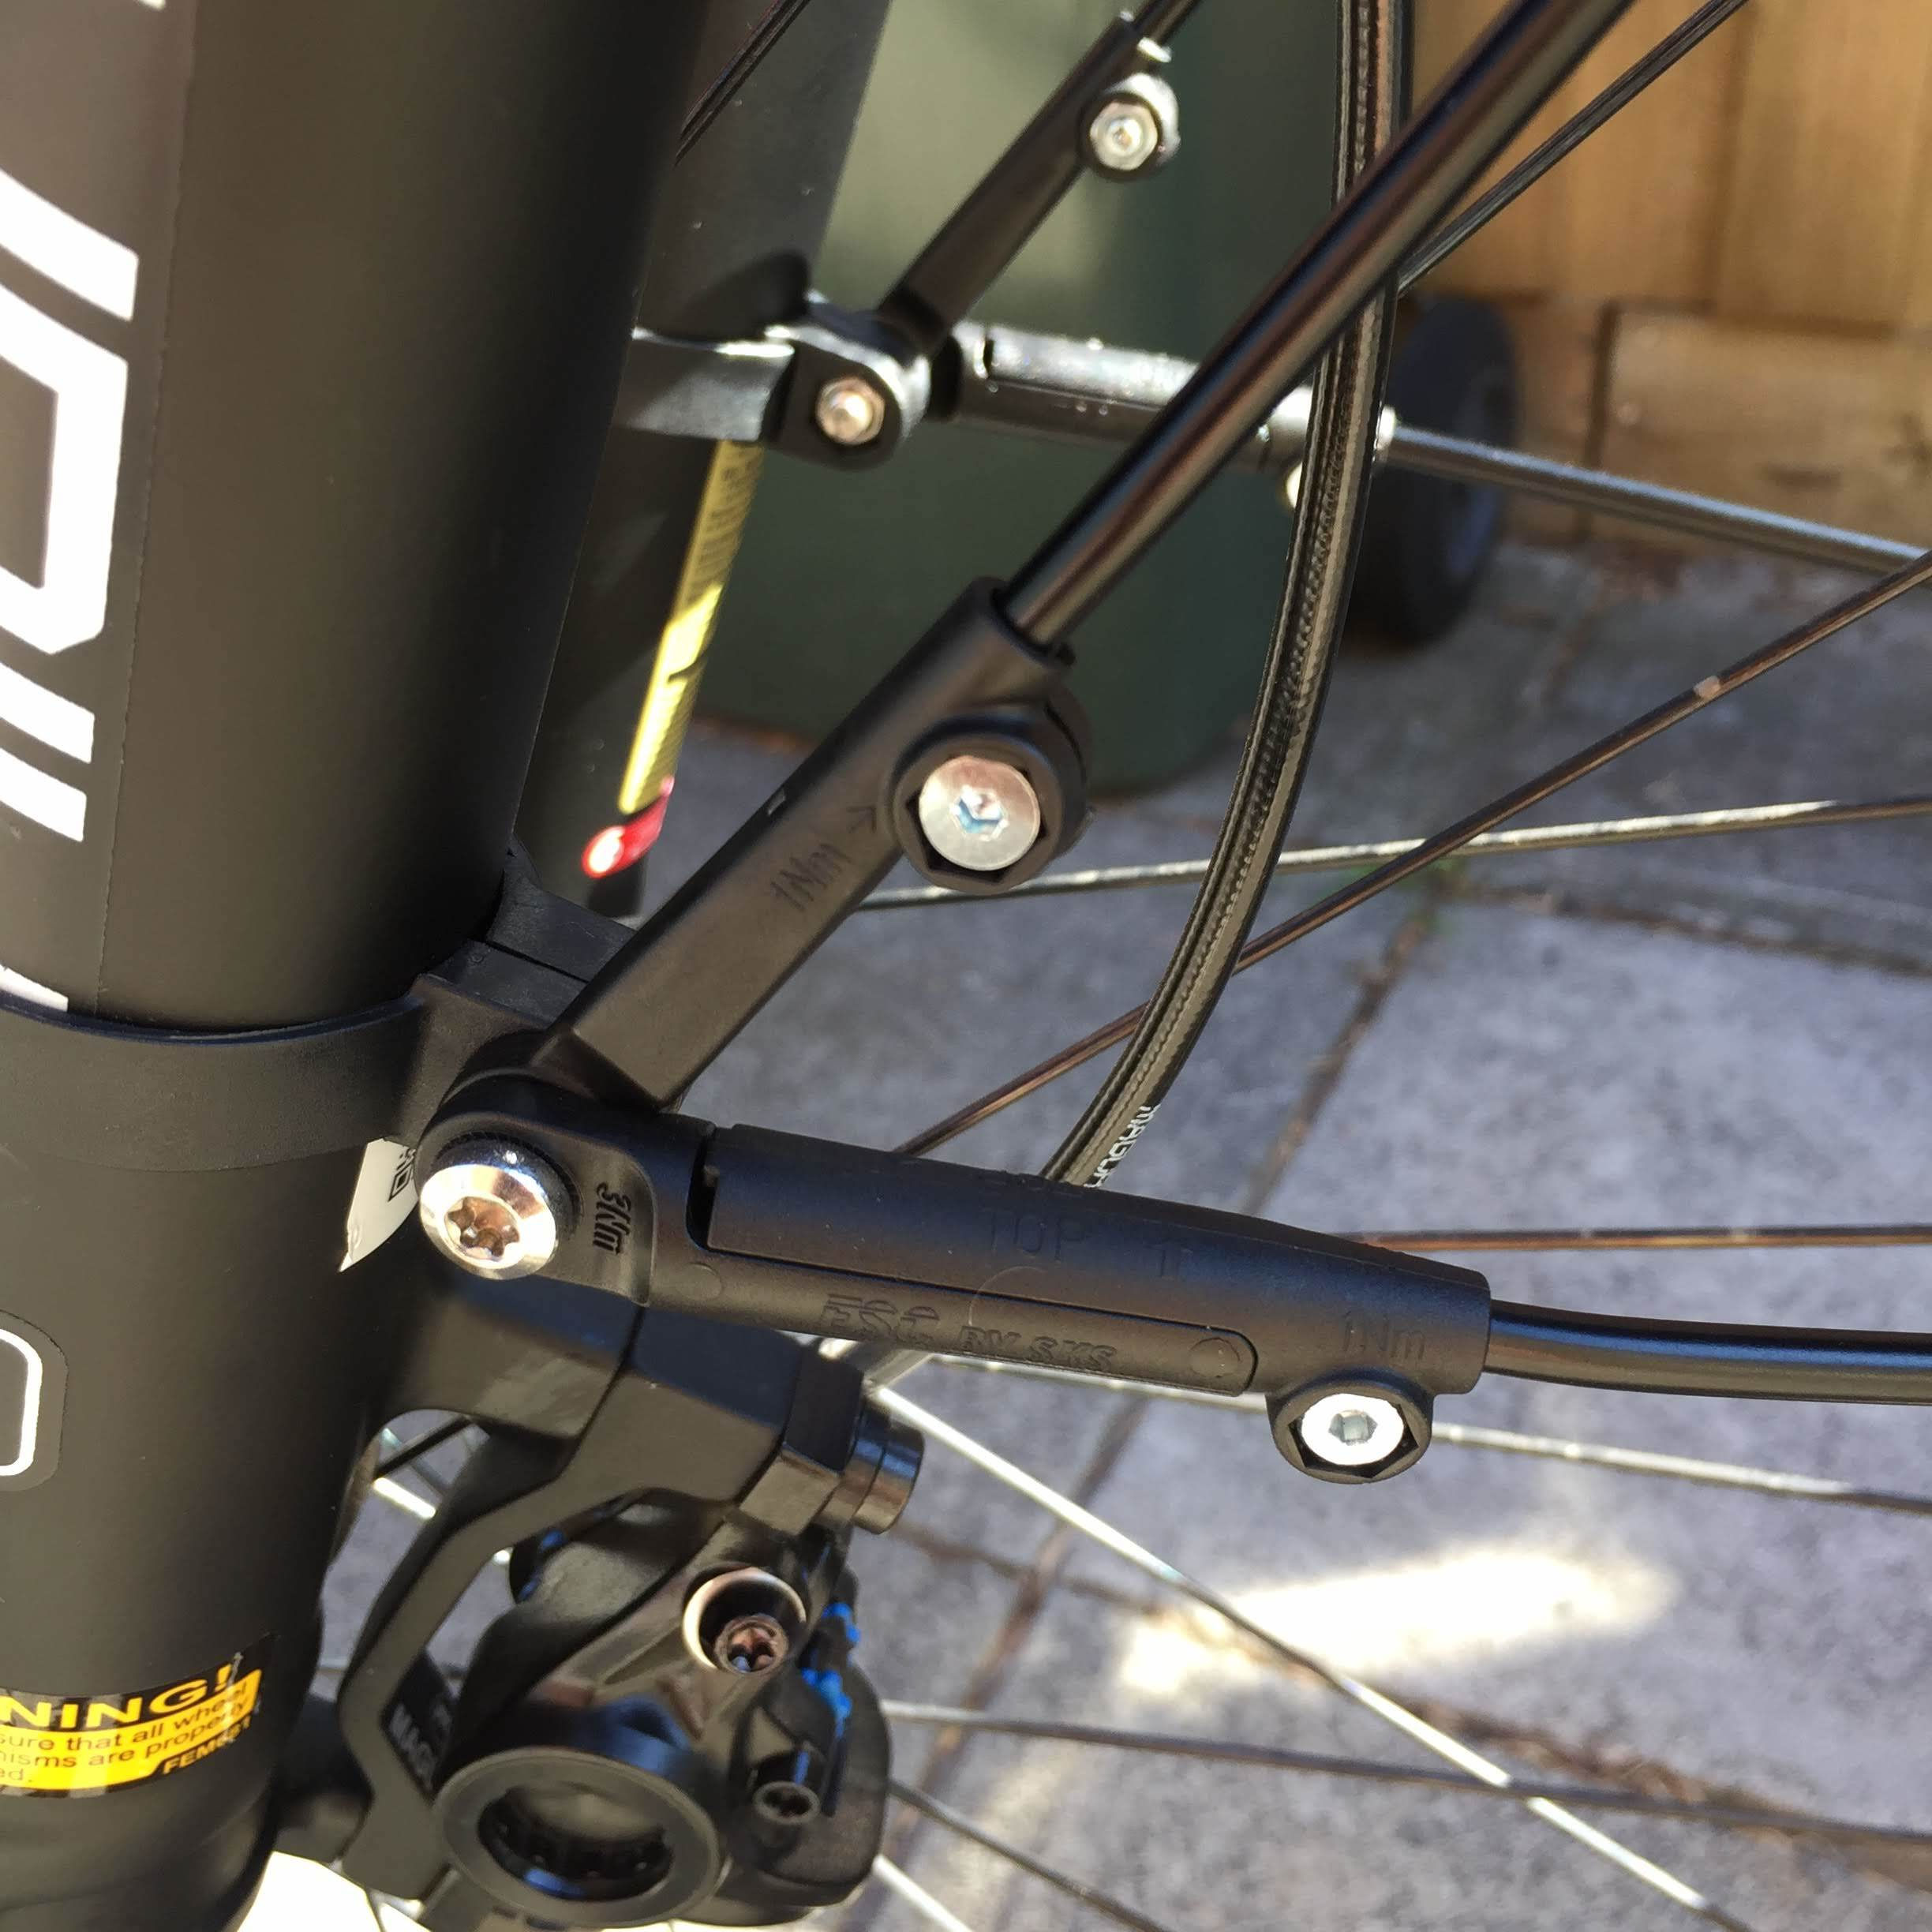 Strong connectors for the mud guards